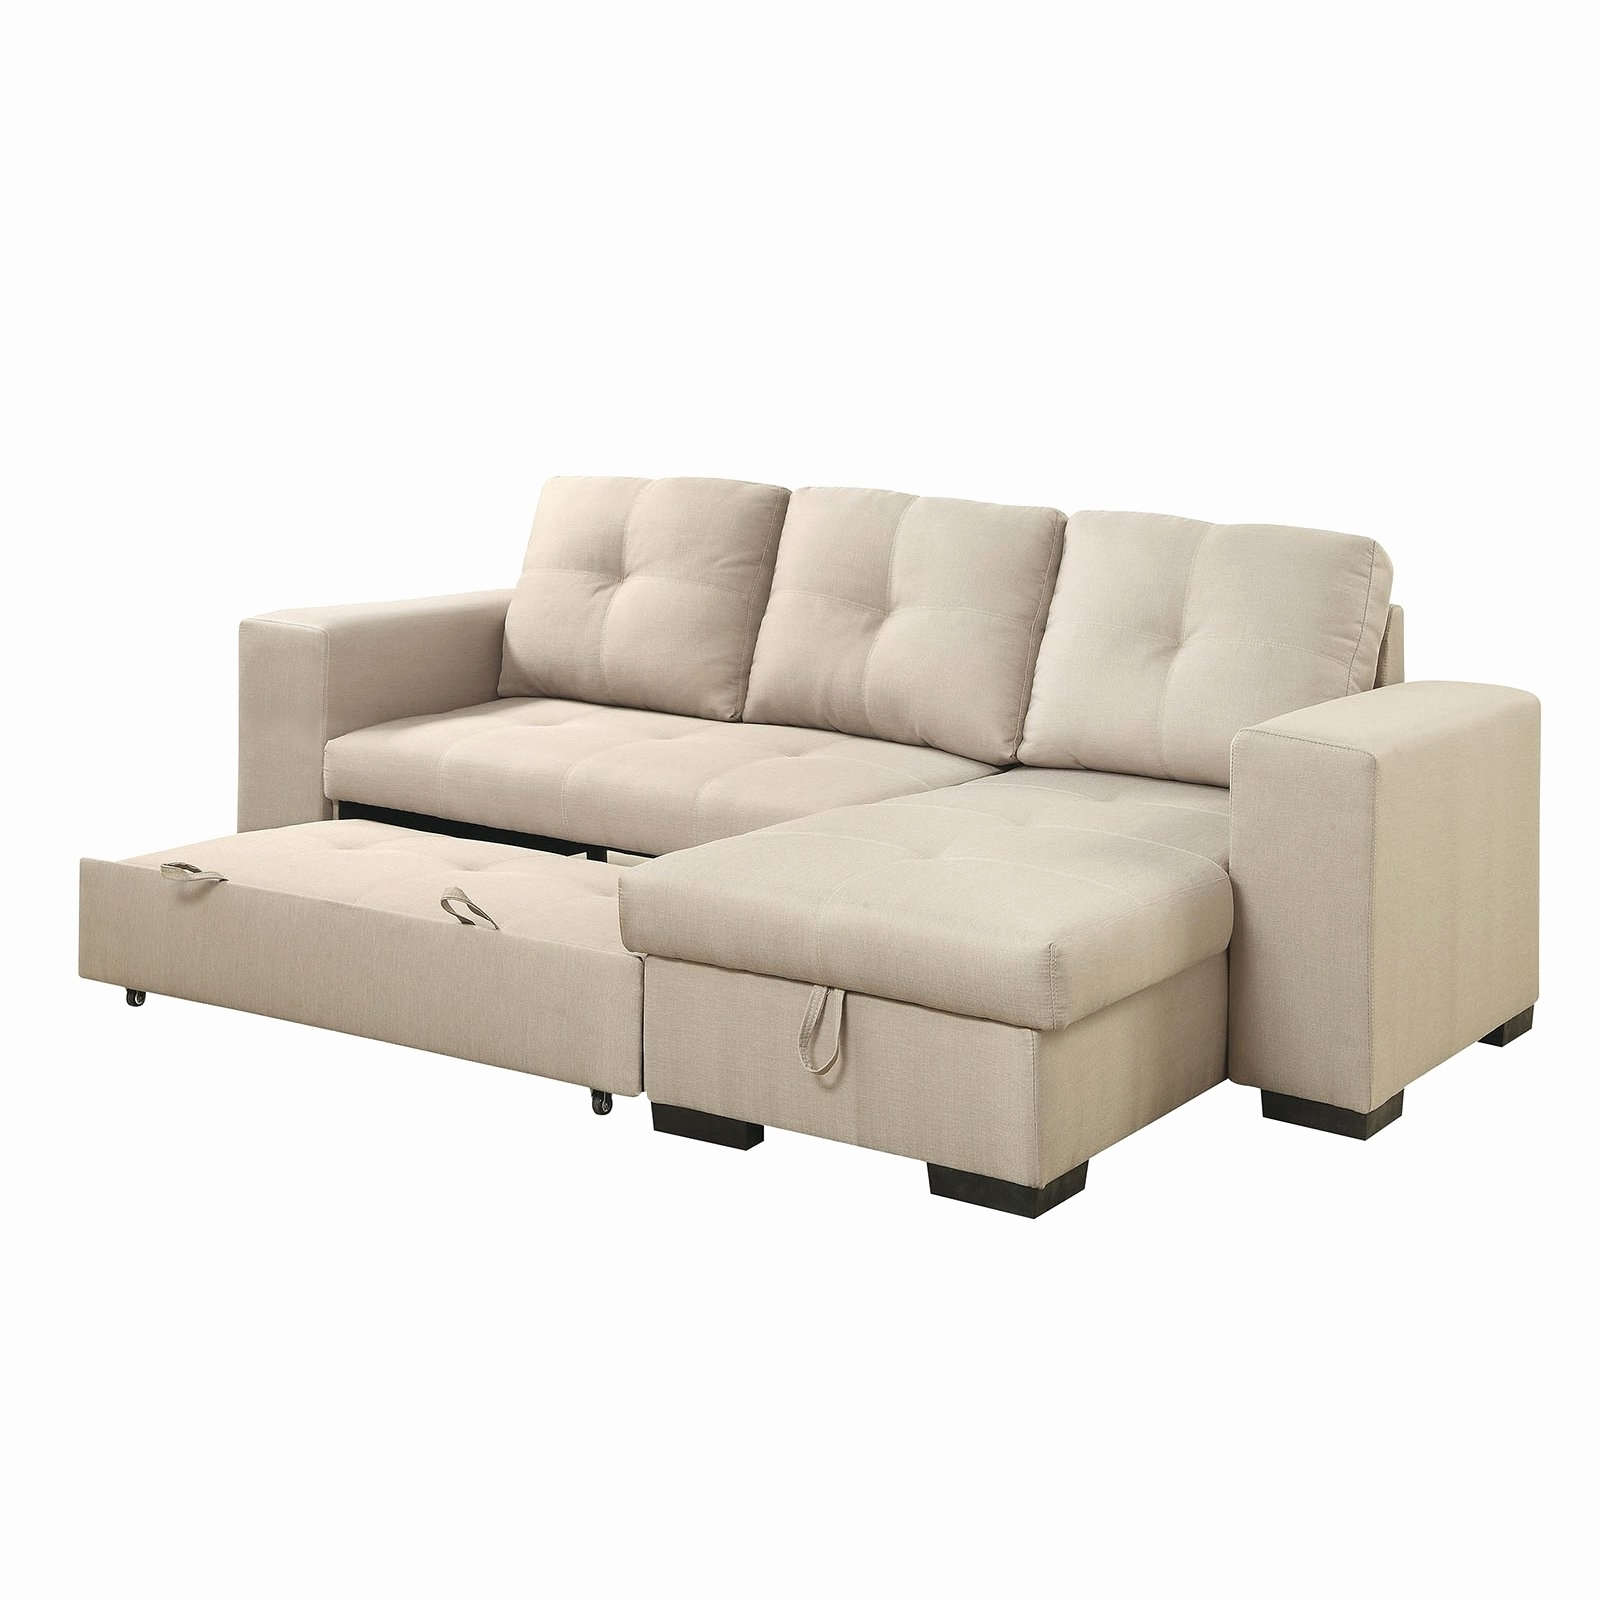 Trendy Sofa : Leather Sleeper Sofa With Chaise Best Of Chaise Lounge For Sleeper Chaise Lounges (View 13 of 15)